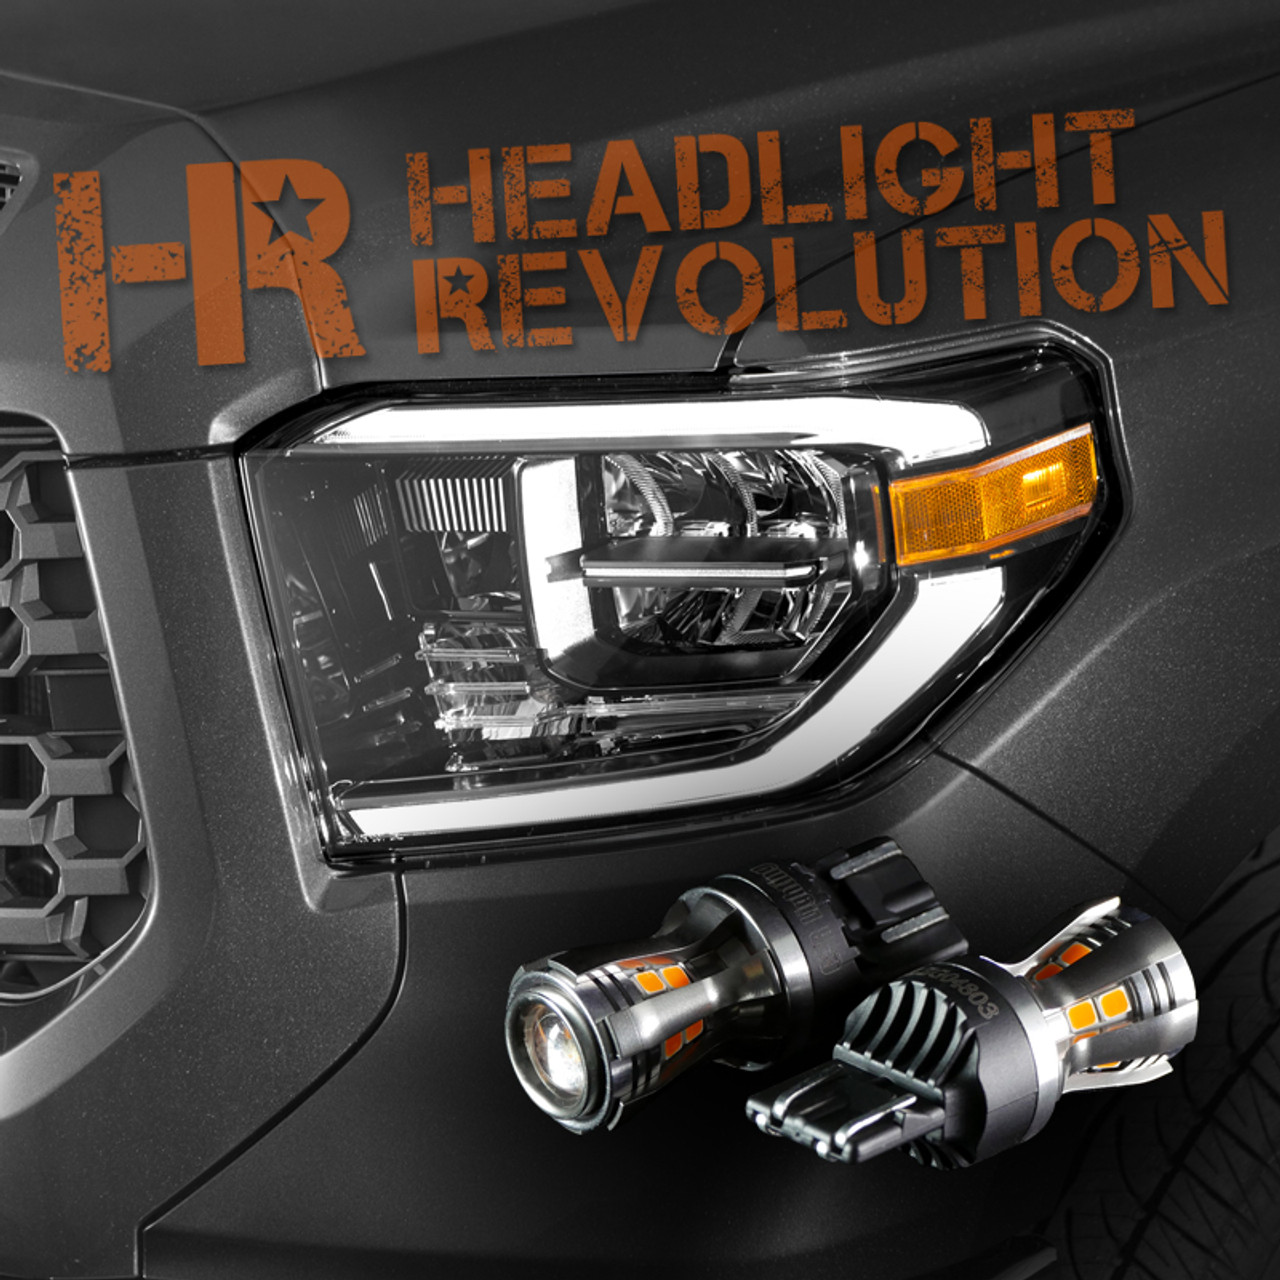 2018 Toyota Tundra Led Front Blinker Kit Amber Bulbs